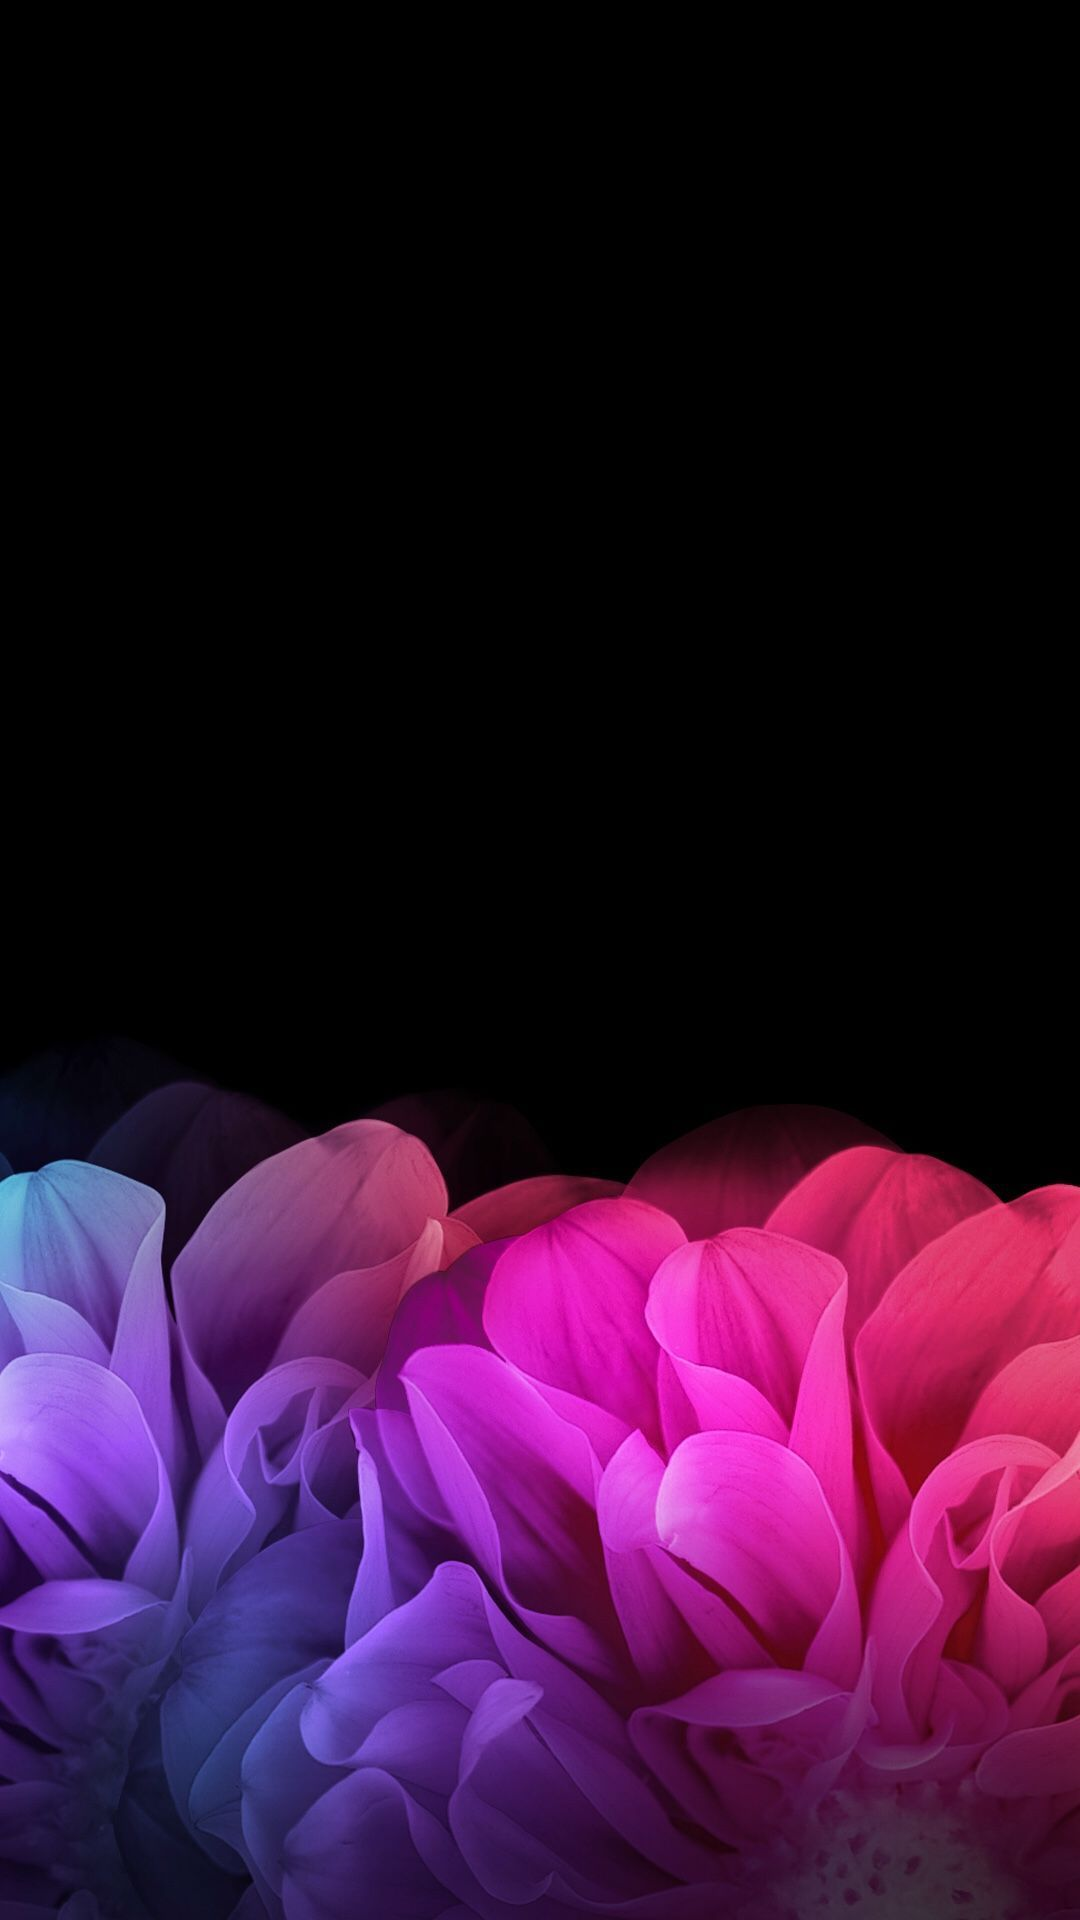 List of Best Flowers Phone Wallpaper HD Today by 123artwallpaper.blogspot.com